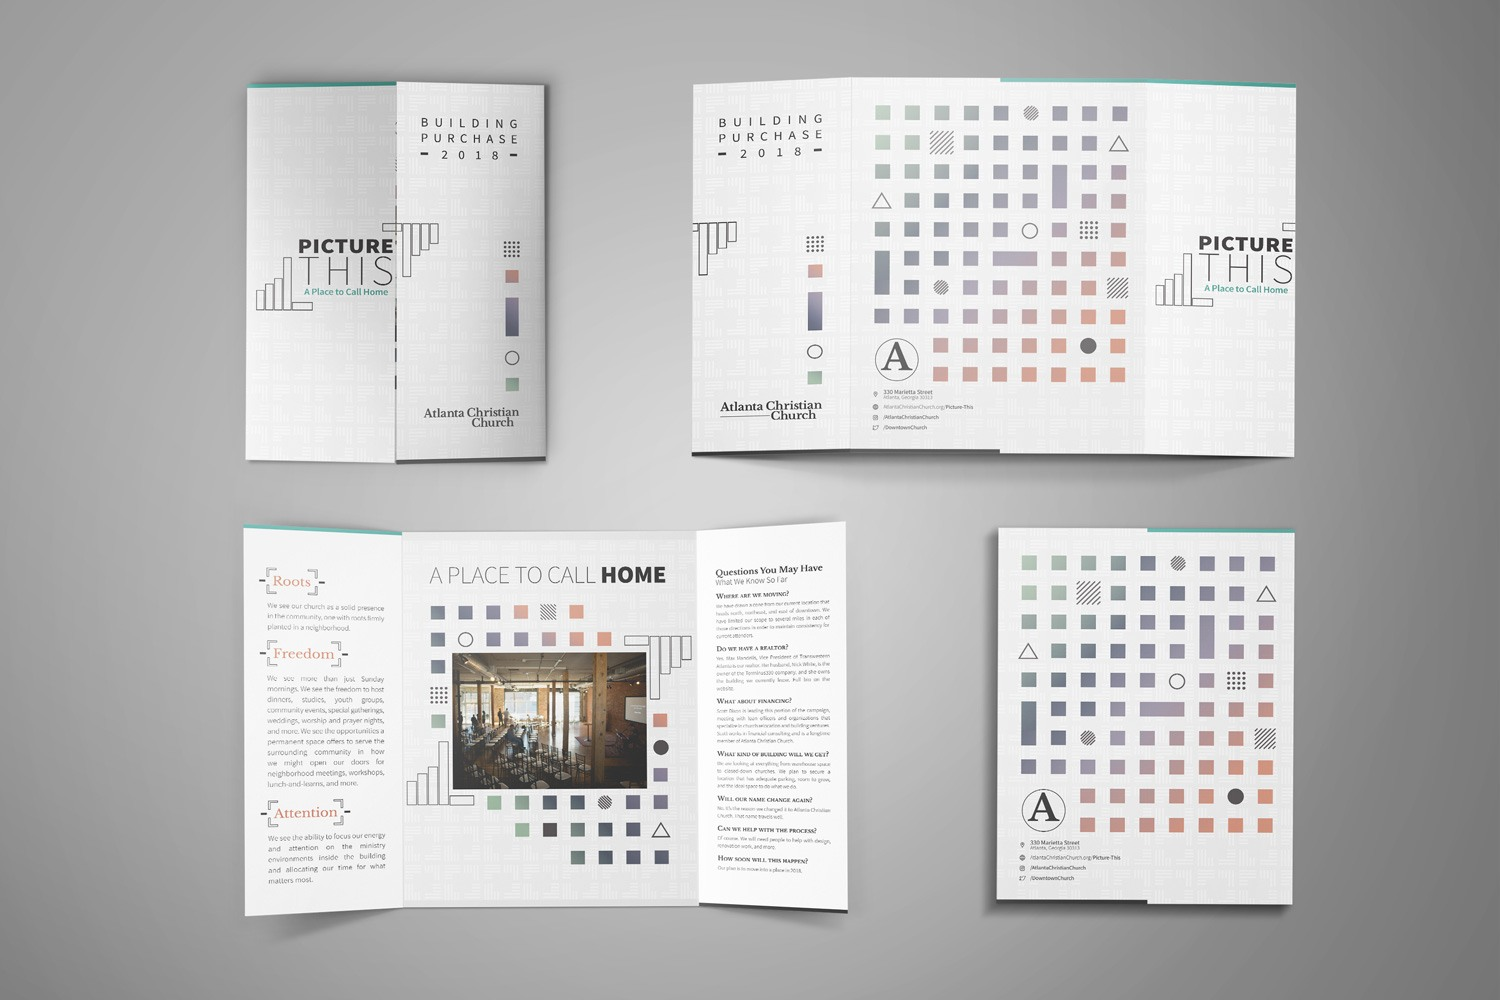 church stewardship campaign brochure examples ideas